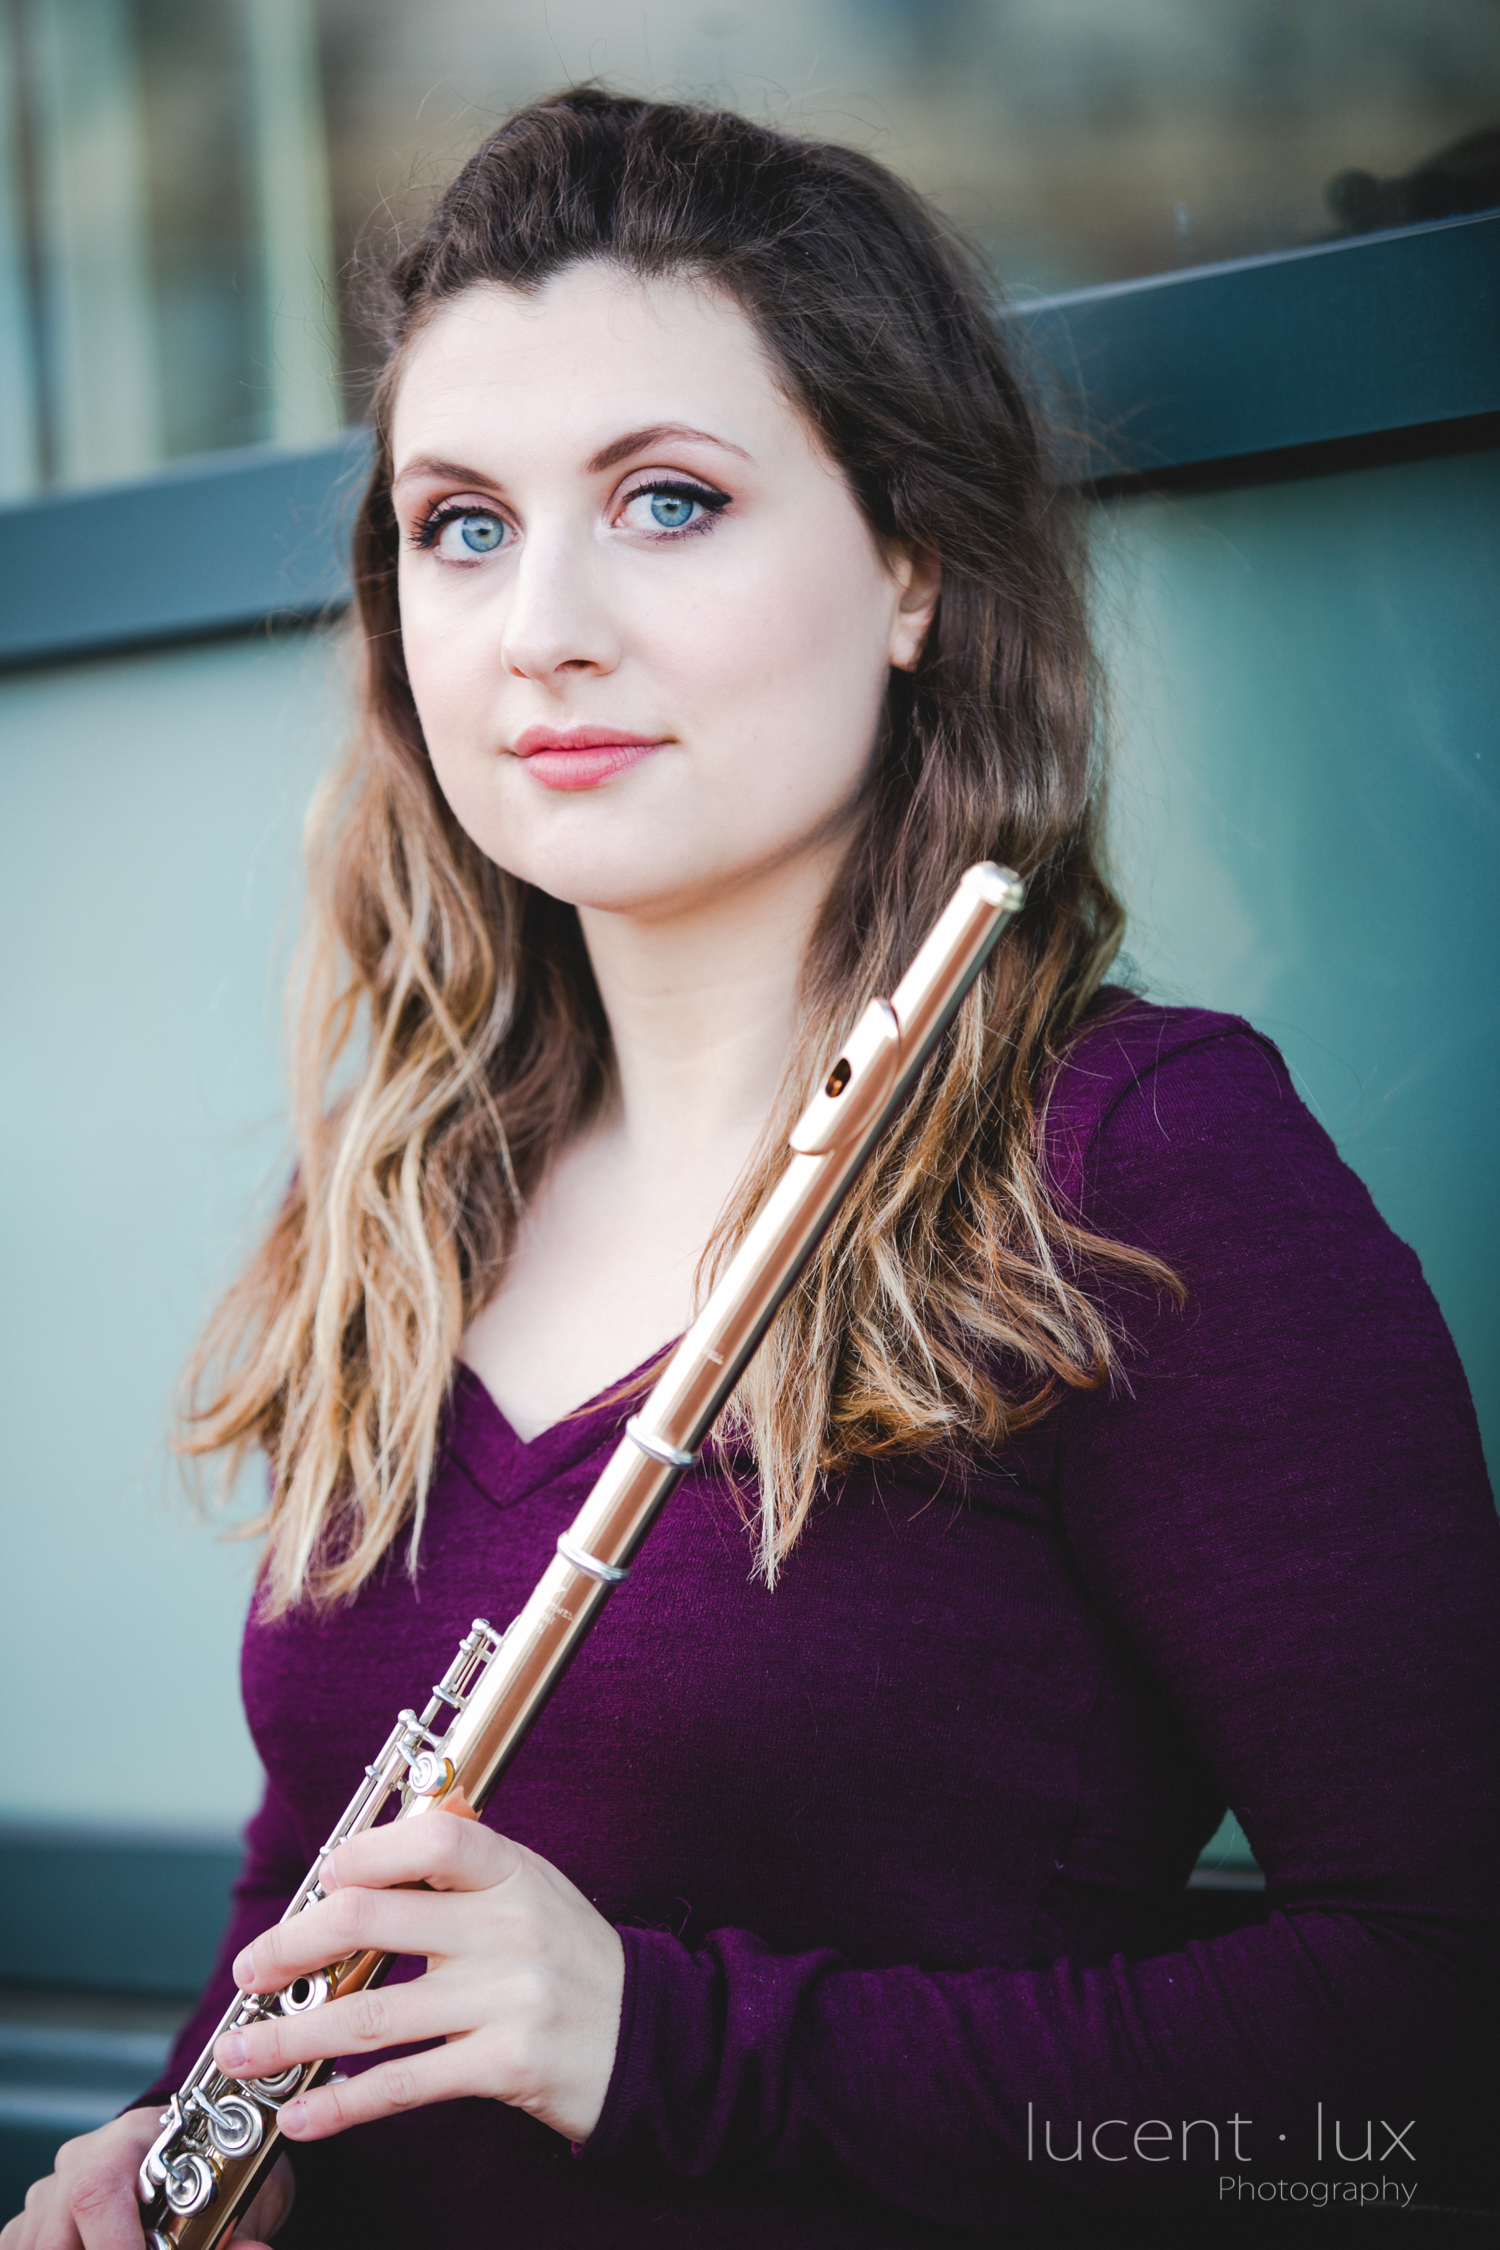 Fells_Point_Portrait_Photography_Musician_Headshots_Baltimore_Photographer-Flautist-Flute-Player-Portraits-102.jpg